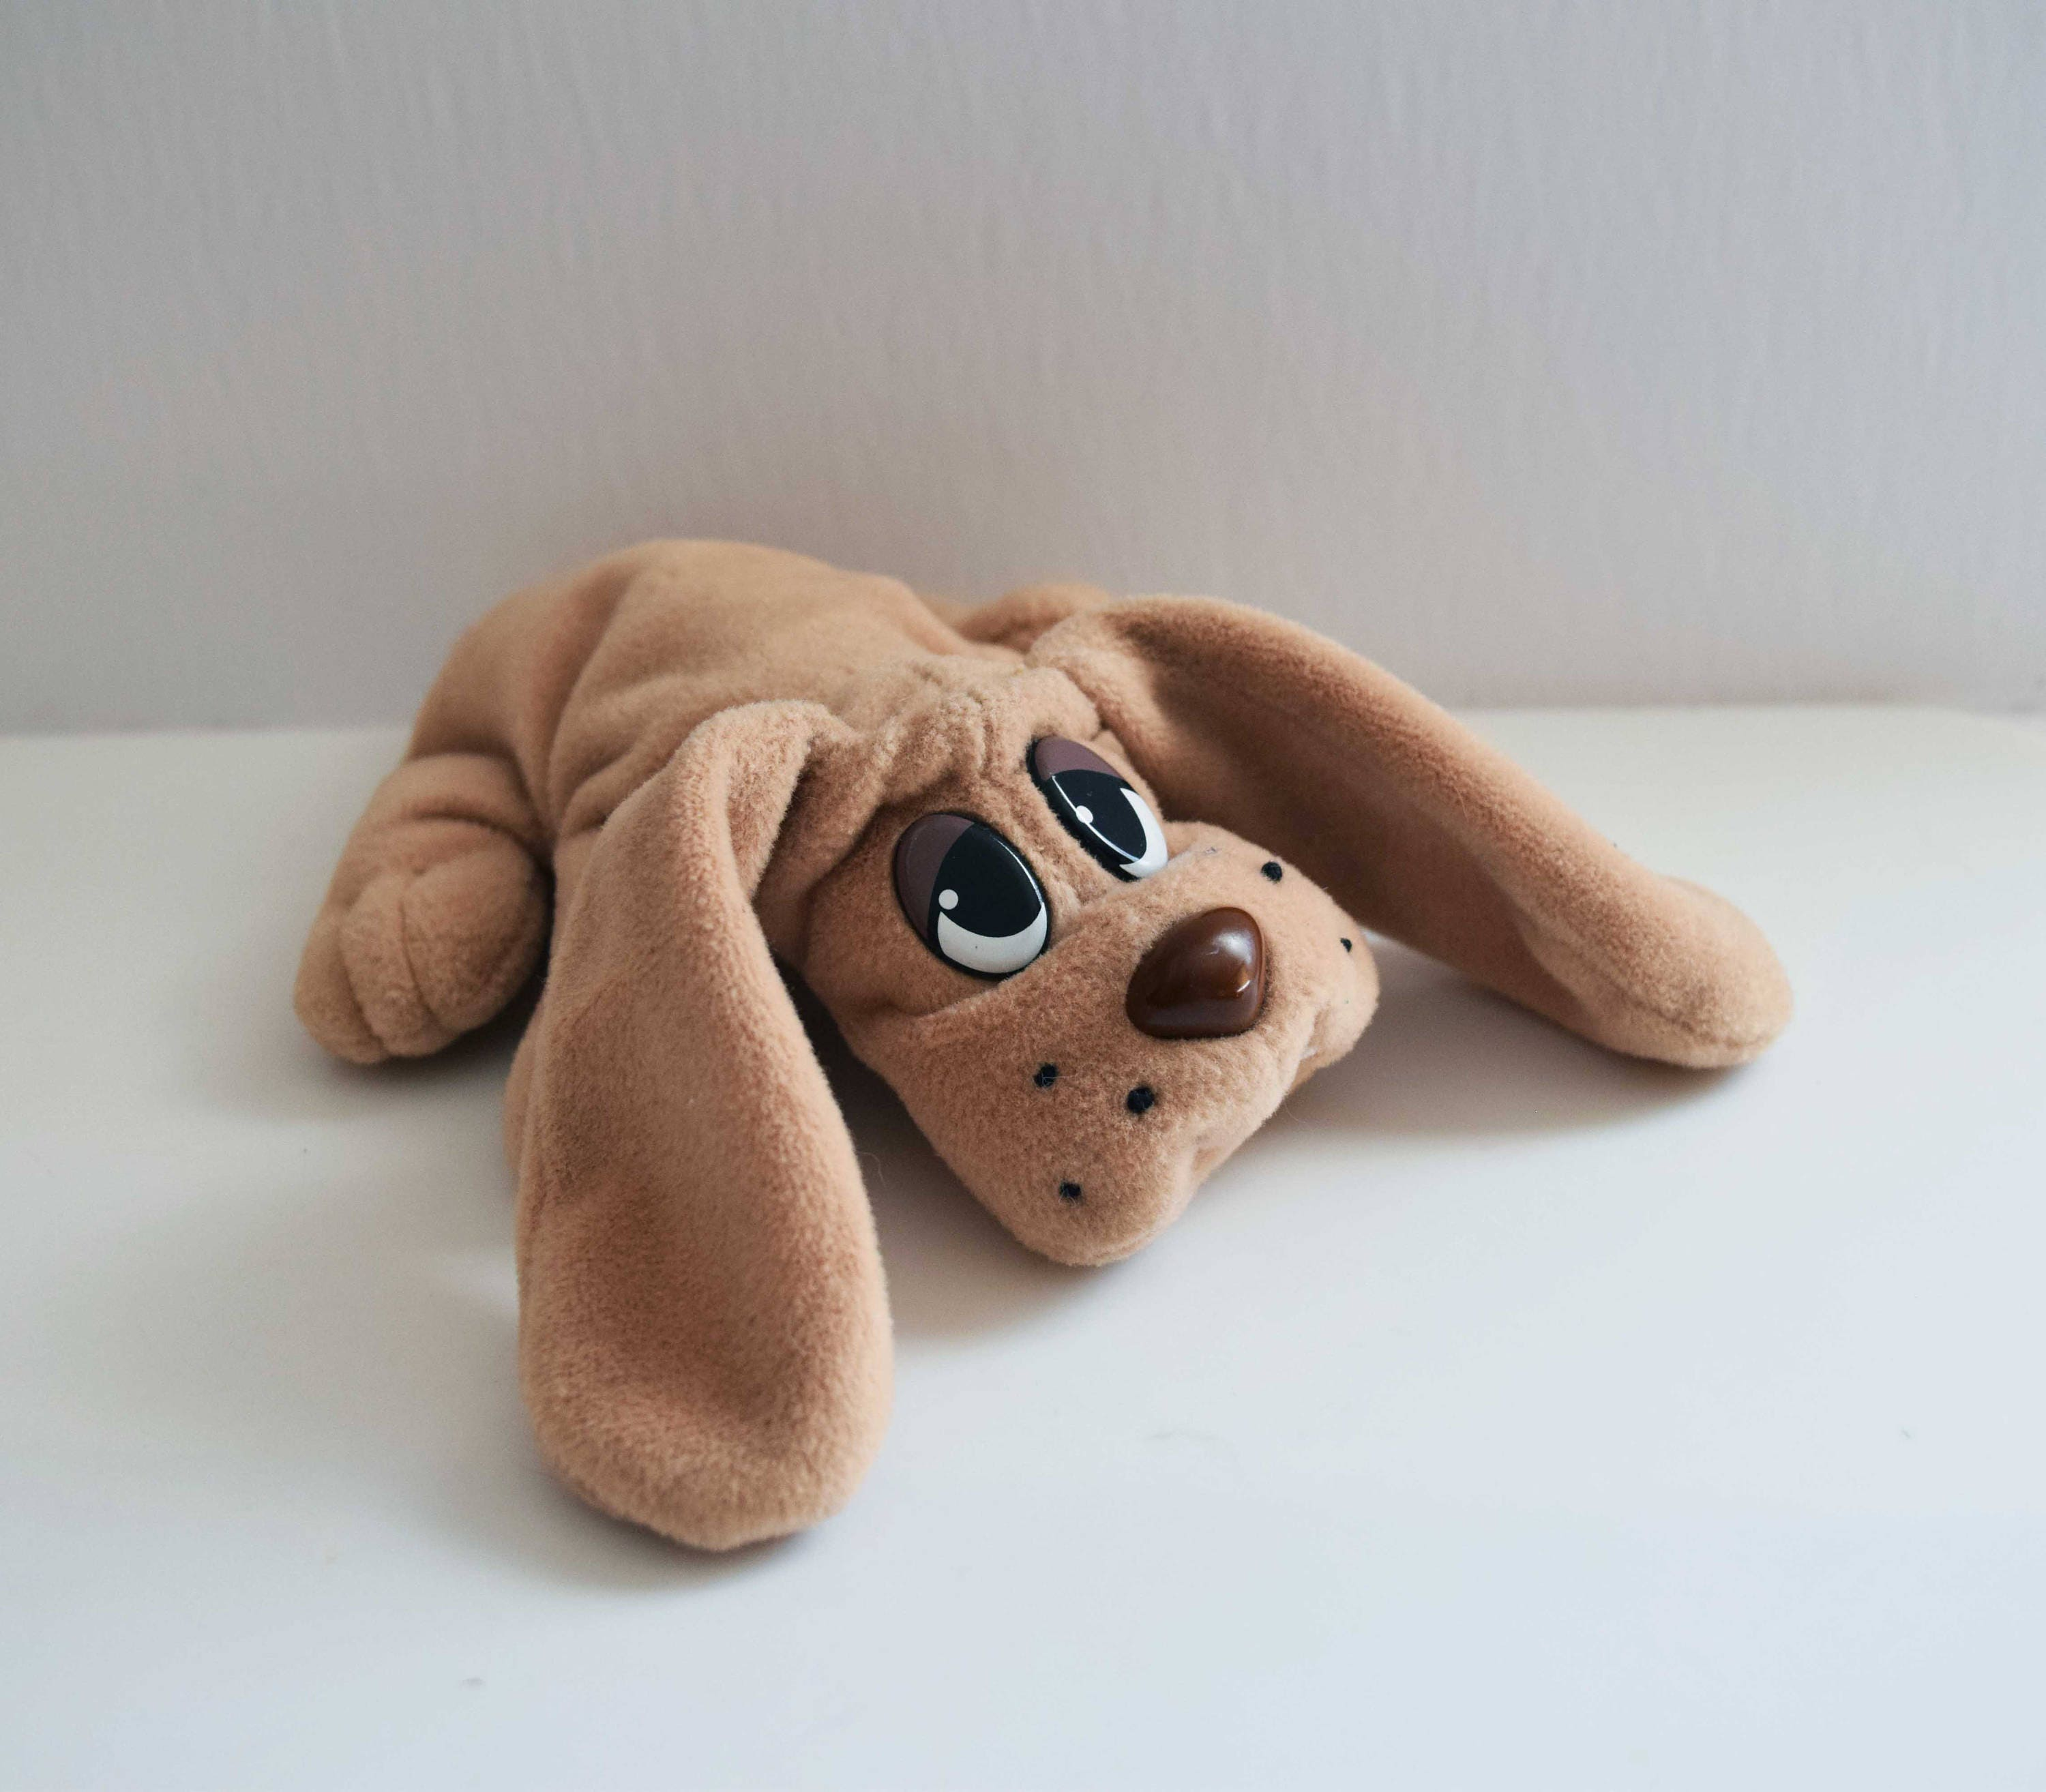 Small Pound Puppy Tan Plush Stuffed Dog Toy Vintage 7 Inches